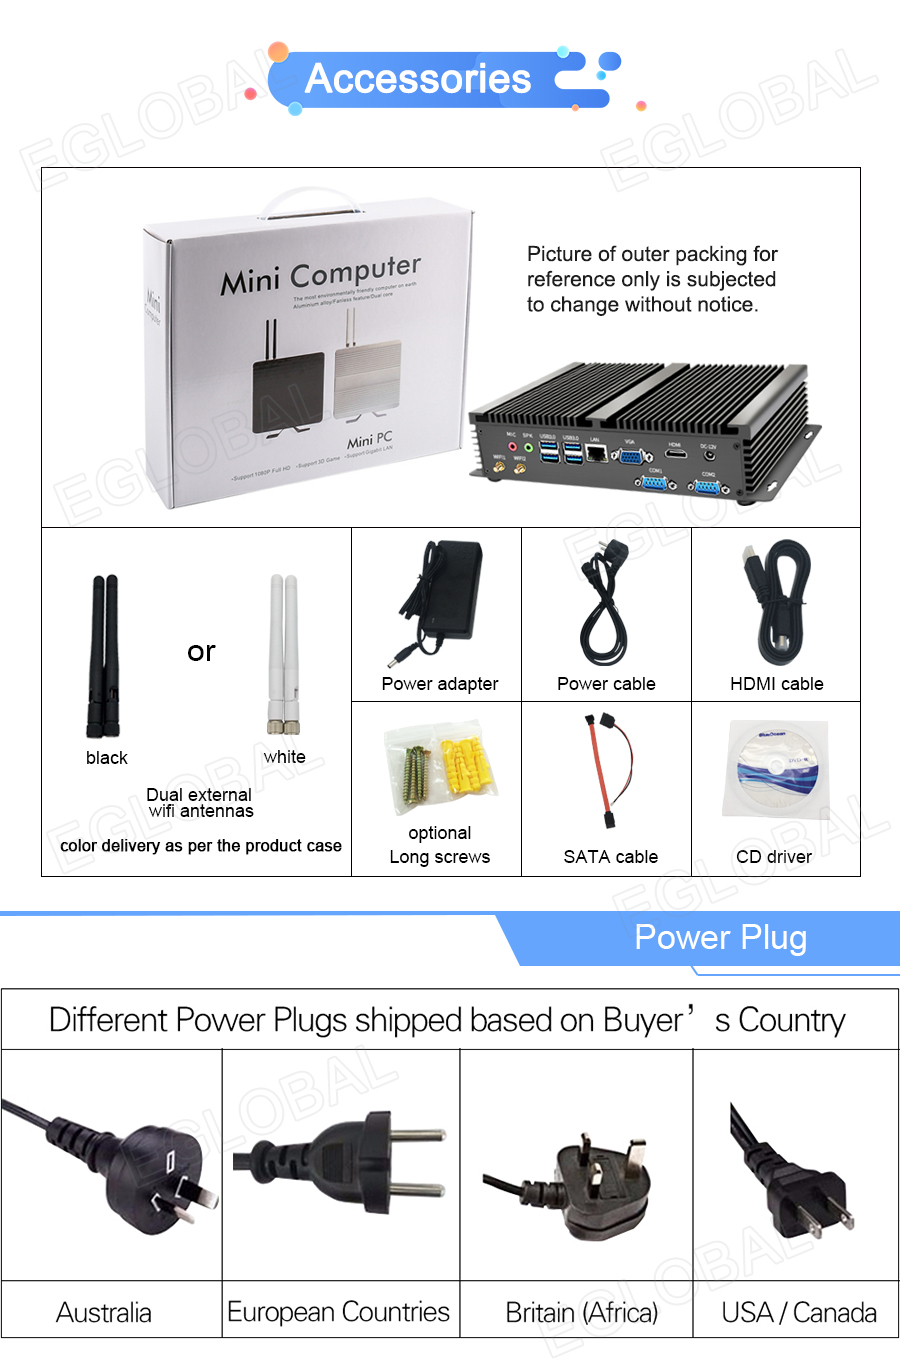 Fanless Industrial Mini PC with HDMI and VGA Dual Display Supports Linux Windows 7/8/10 for Office and Personal Use 16